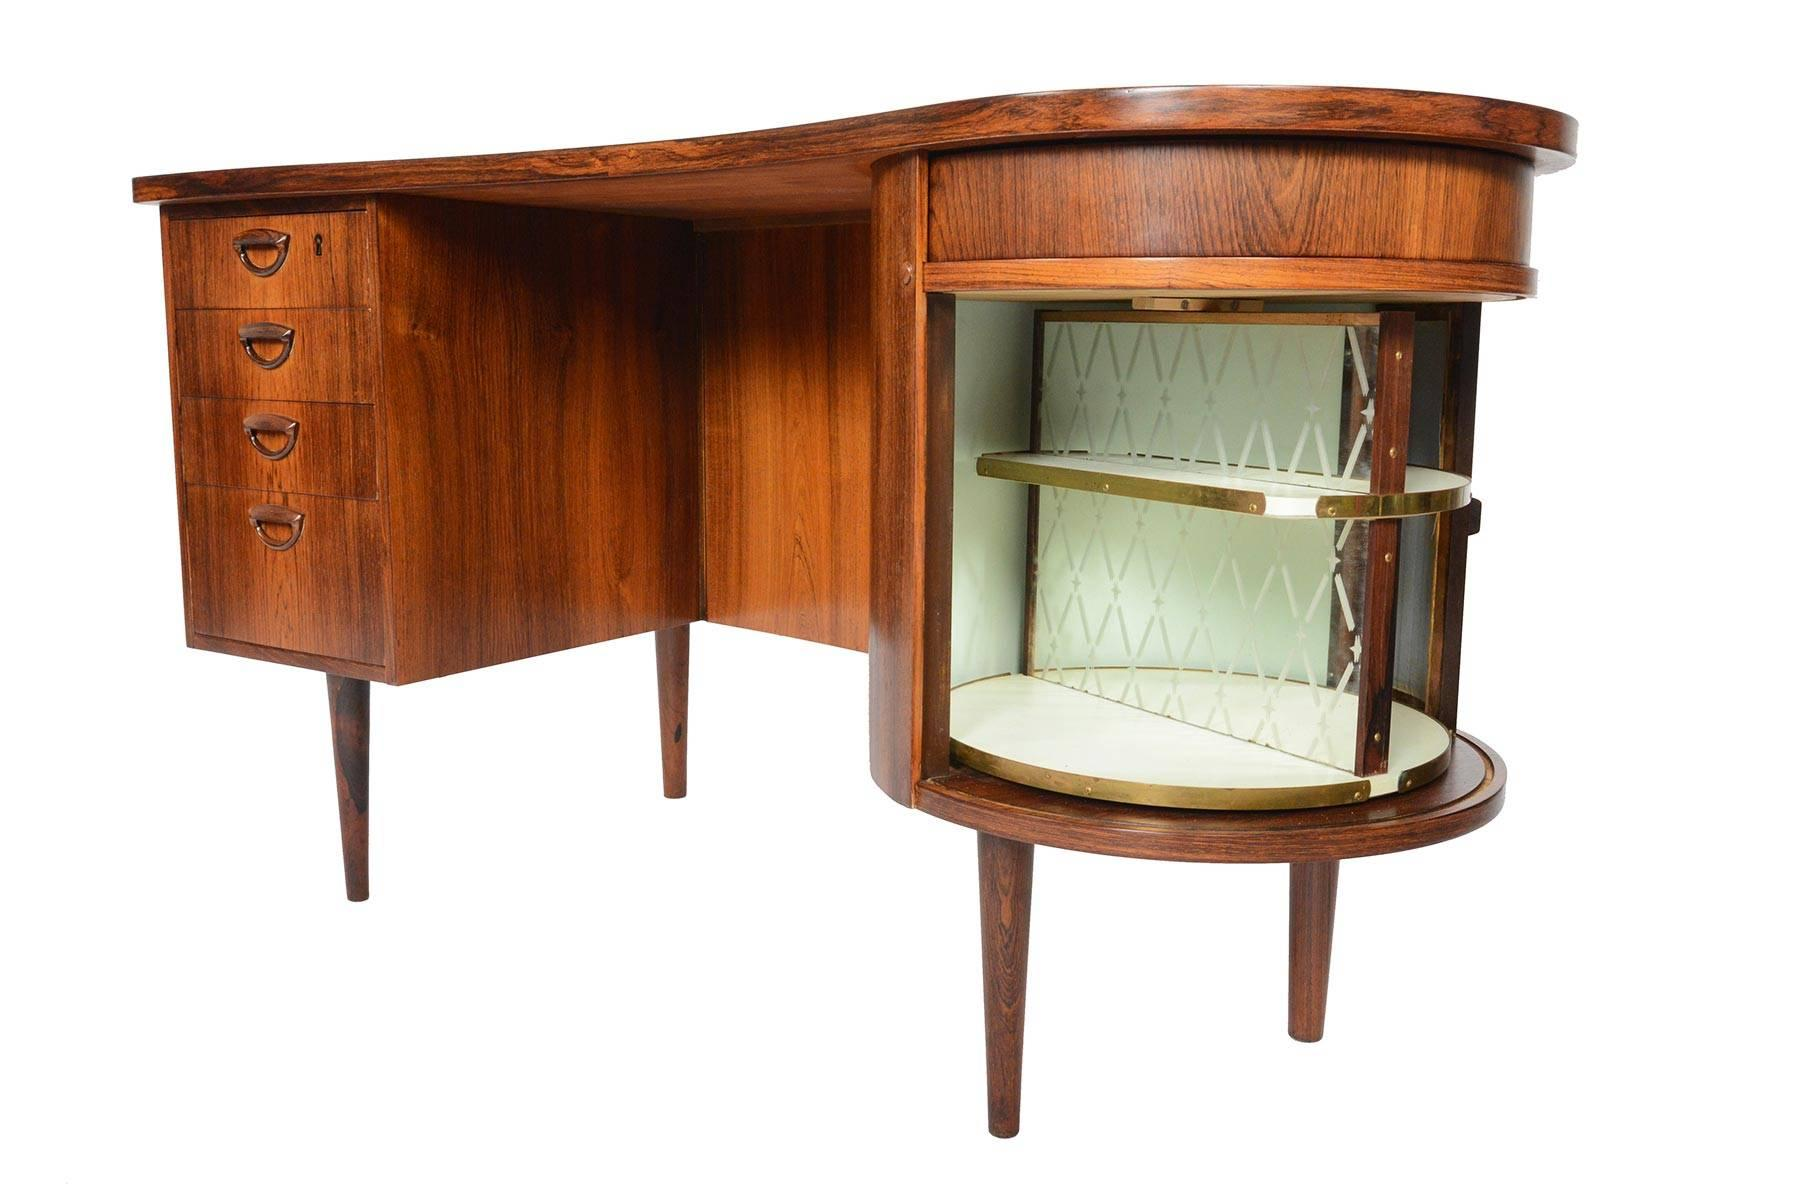 Refinished Kai Kristiansen Model 54 Executive Writing Desk In Brazilian Rosewood For At 1stdibs